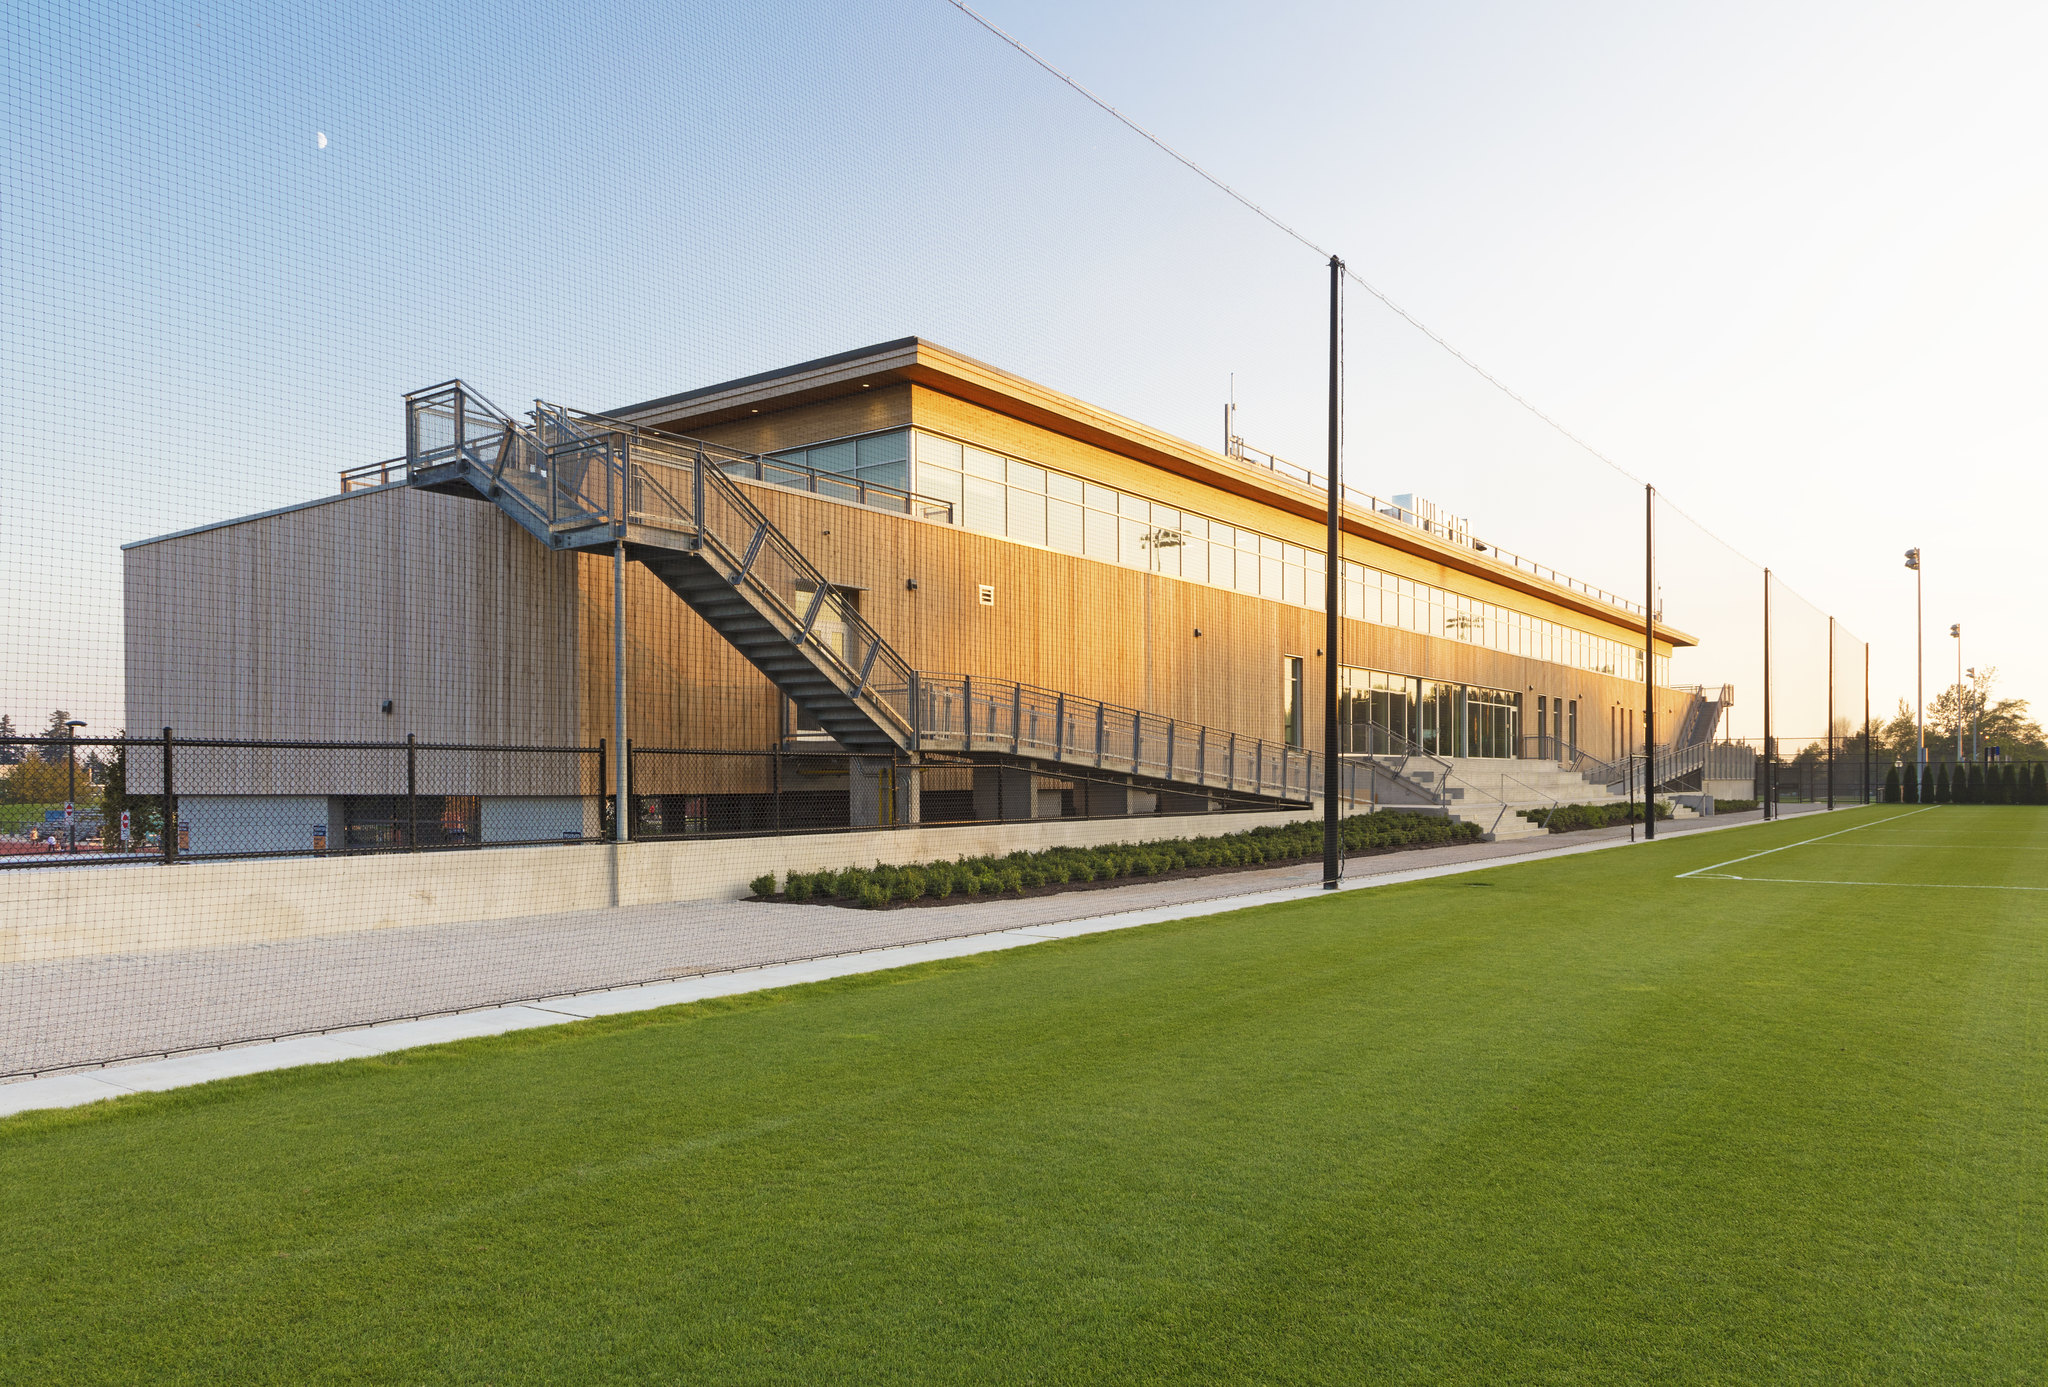 Whitecaps FC National Soccer Development Centre